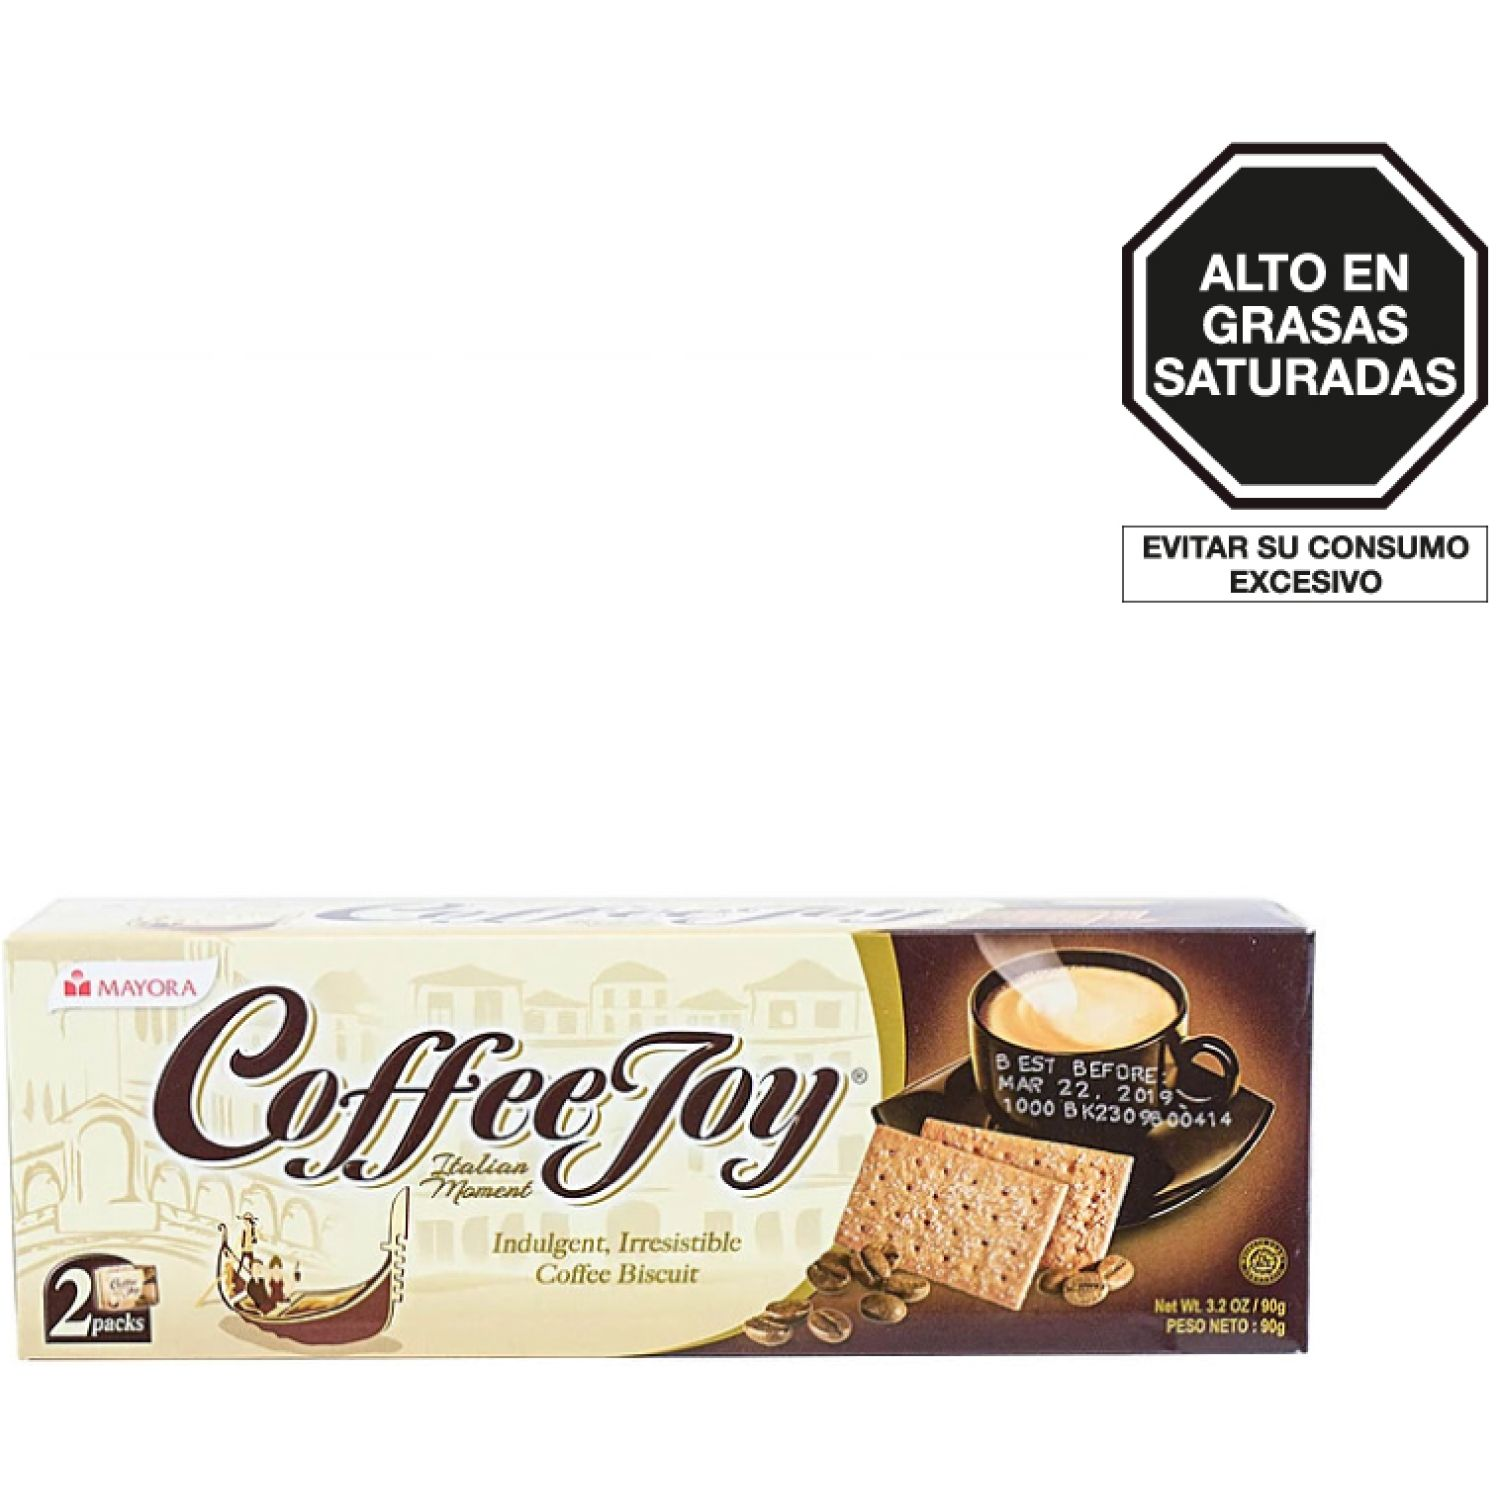 MAYORA GALLETA DE CAFÉ JOY BISCUIT 90G PAQ 0 Pasteles de arroz, patatas fritas y galletas